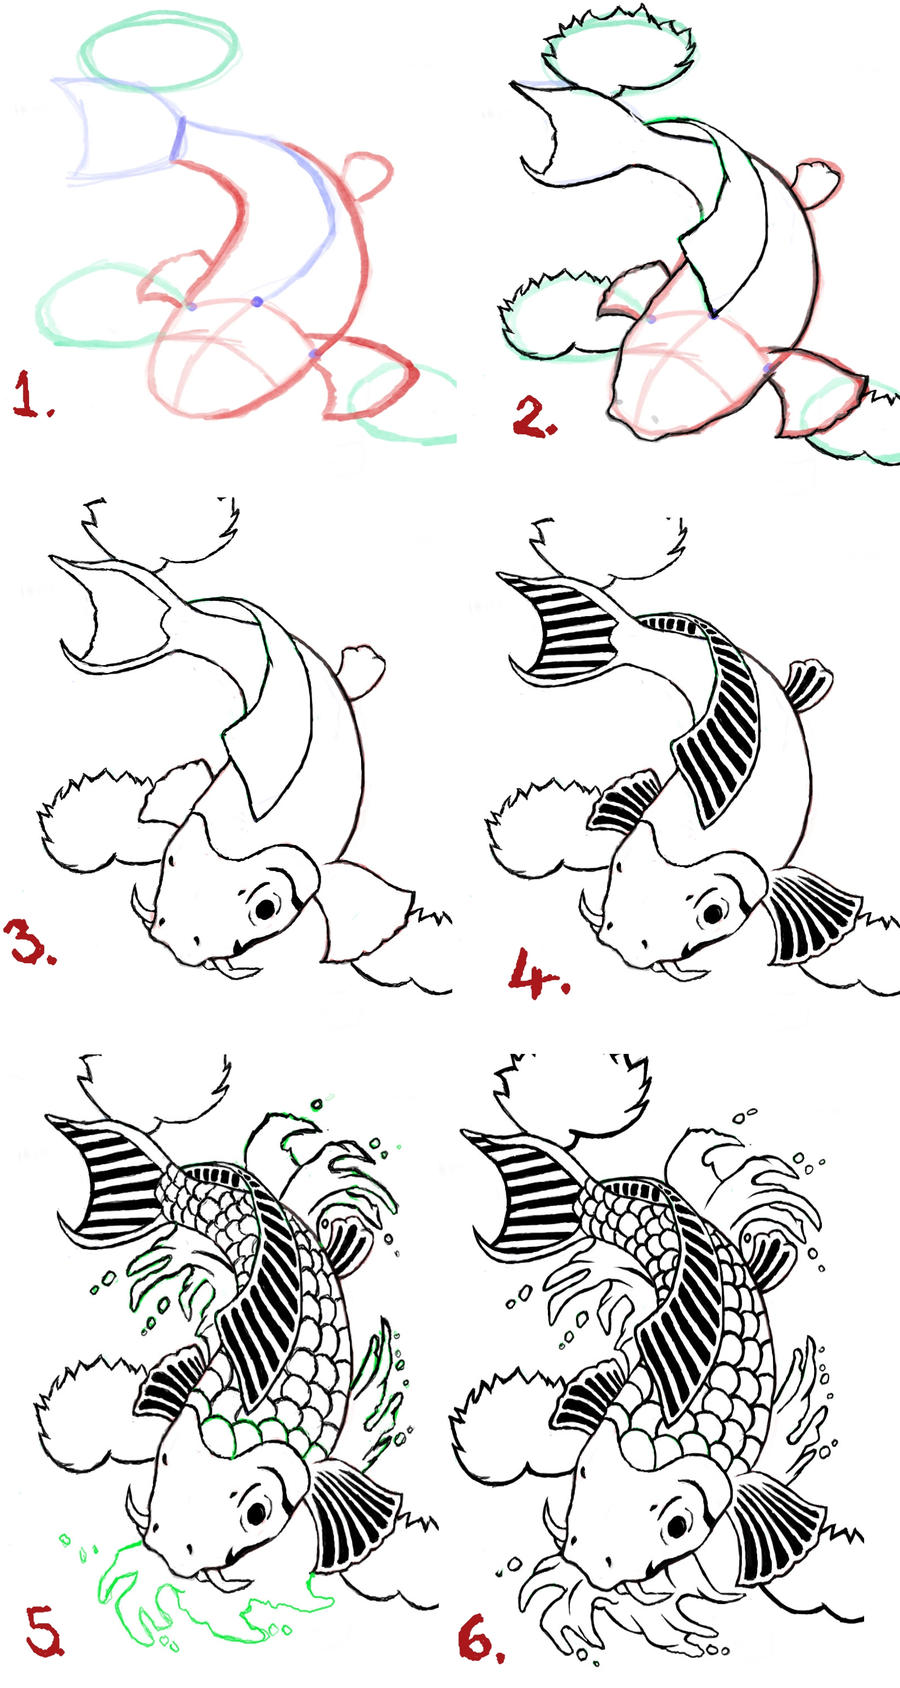 Koi fish drawing steps by wenwecollide on deviantart for Tiny koi fish